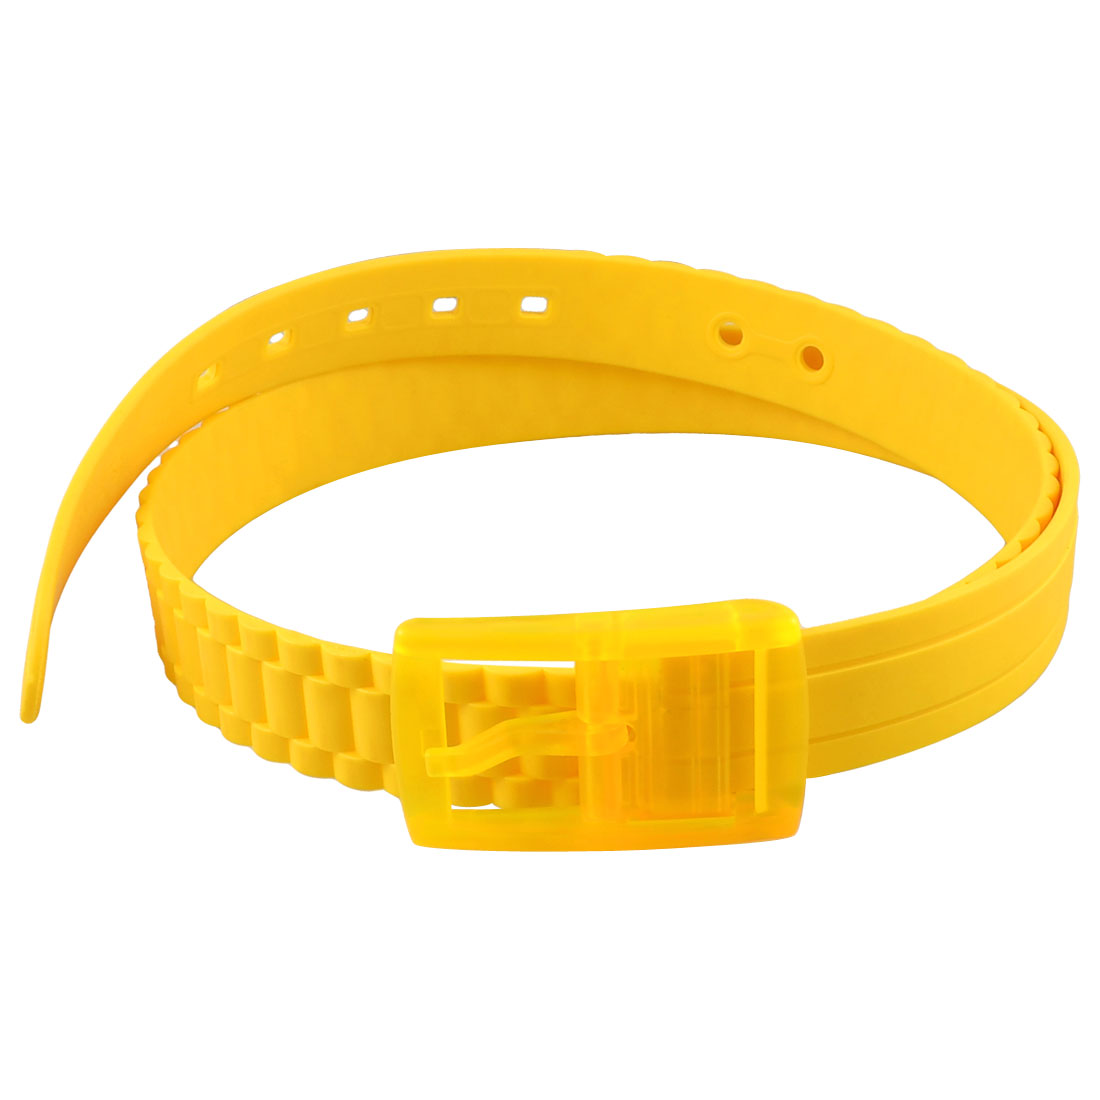 Single Prong Buckle Yellow Plastic Scented Trousers Belt for Lady